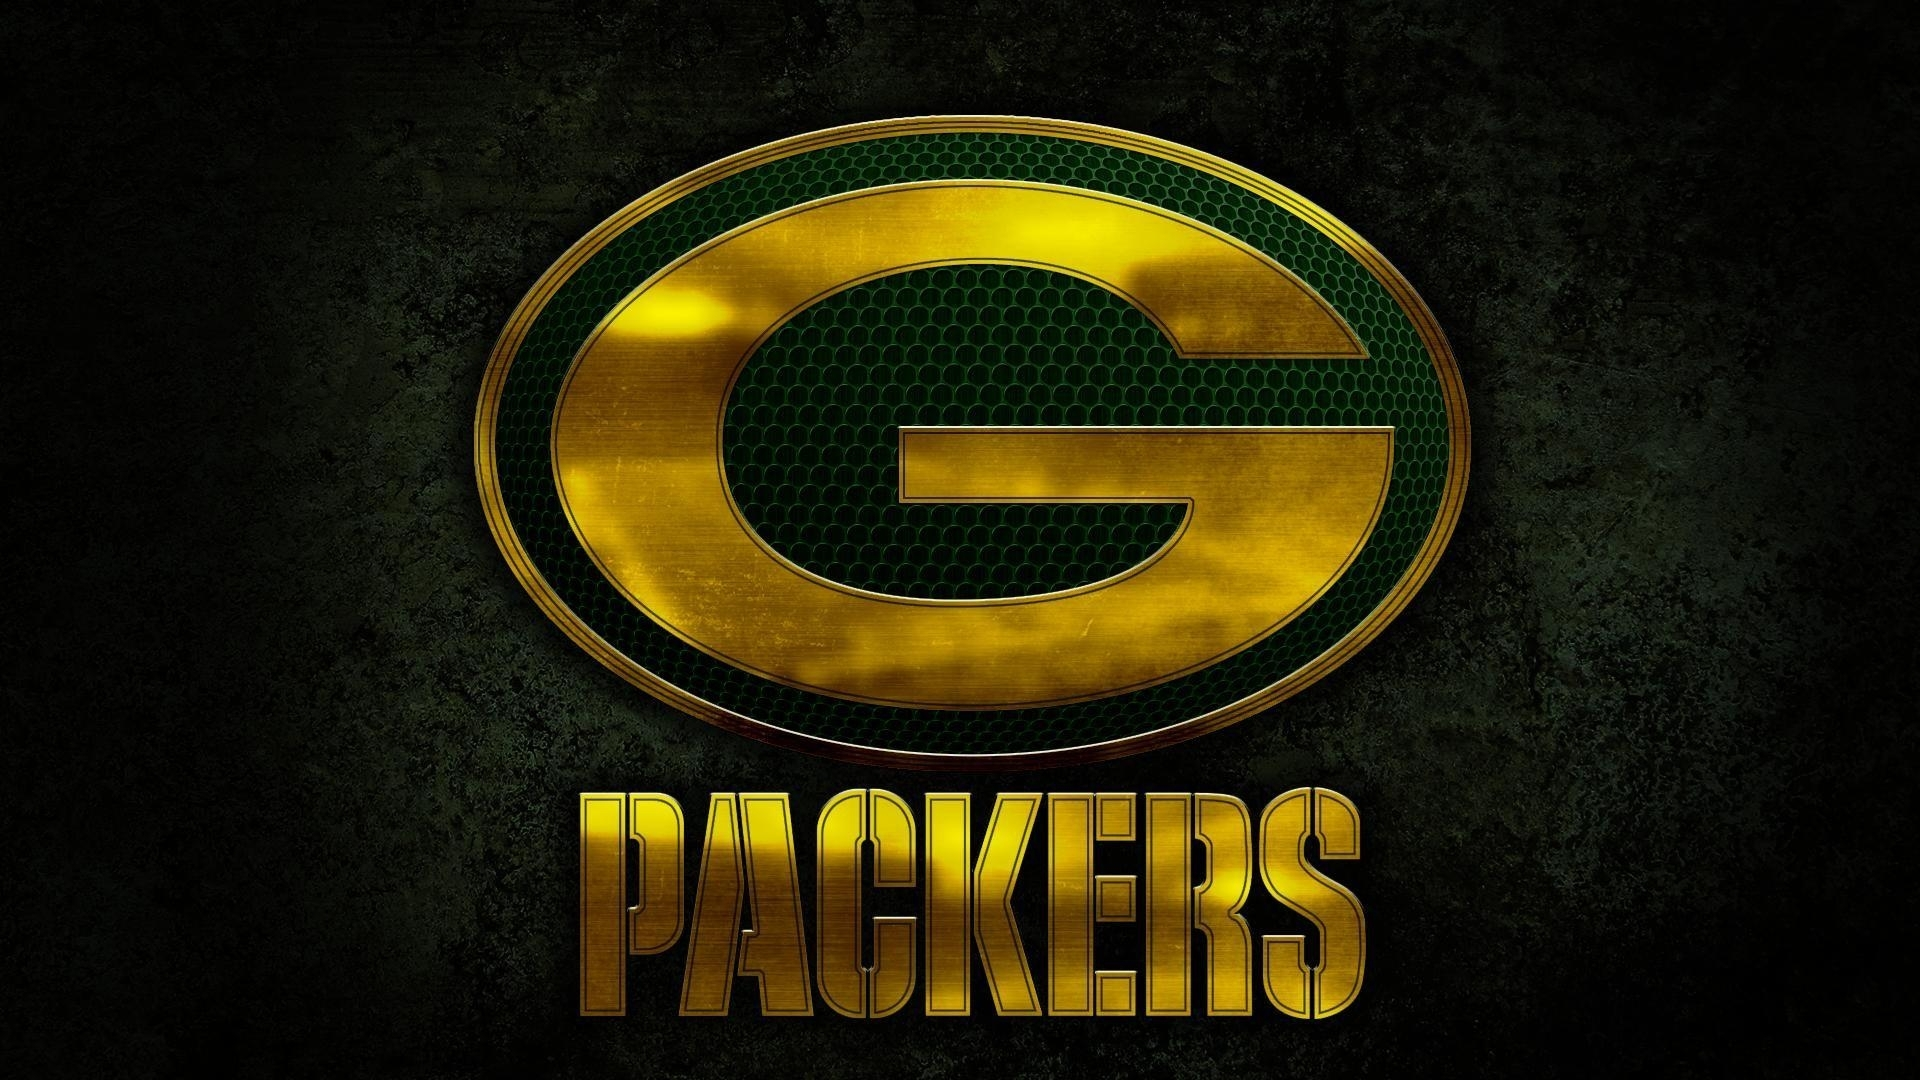 green bay packers logo wallpaper | (134953)